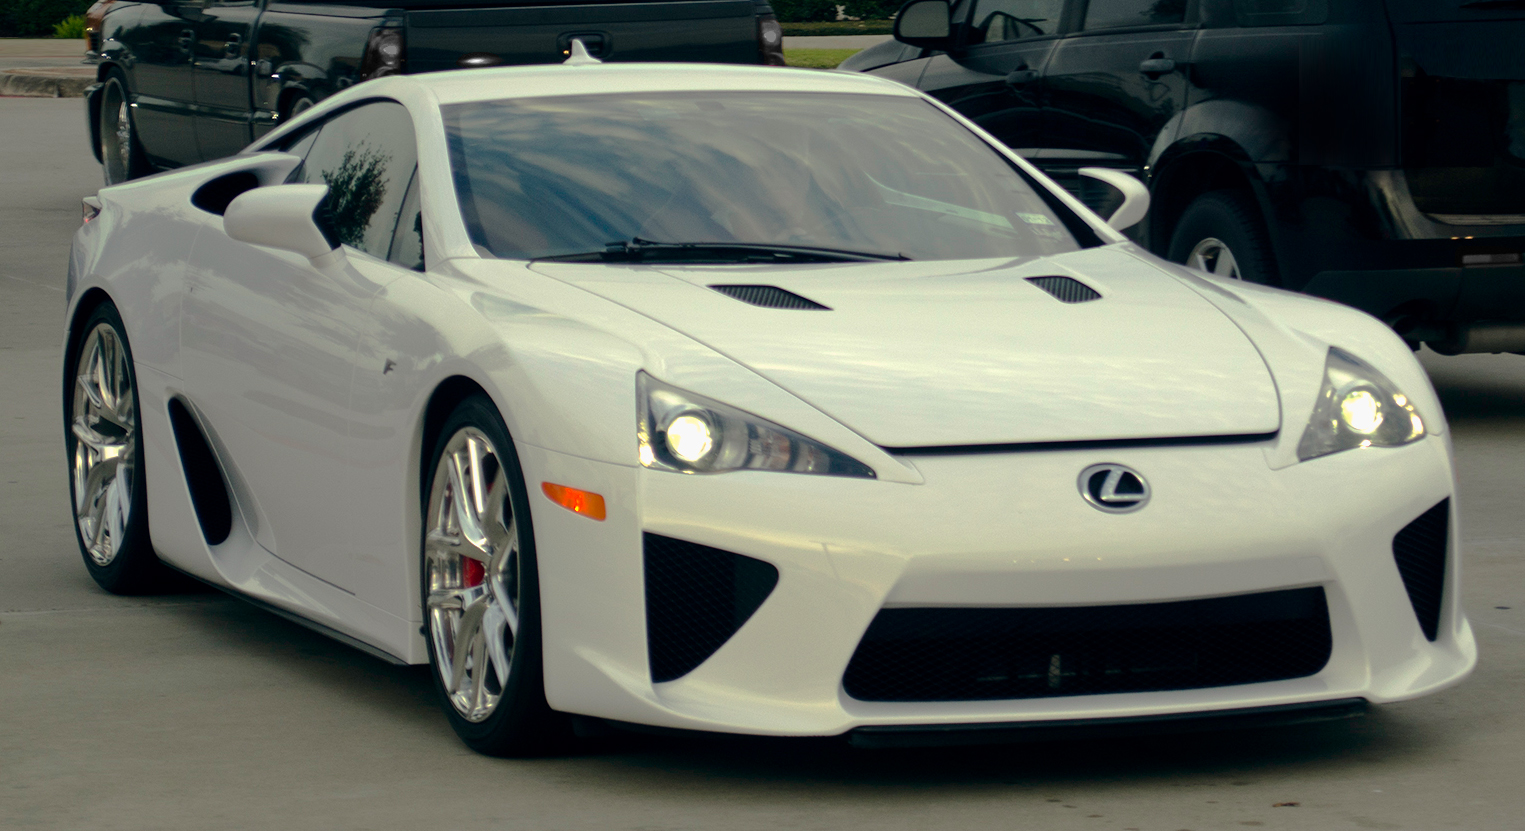 Lexus_LFA_-_Flickr_-_Price-Photography.j